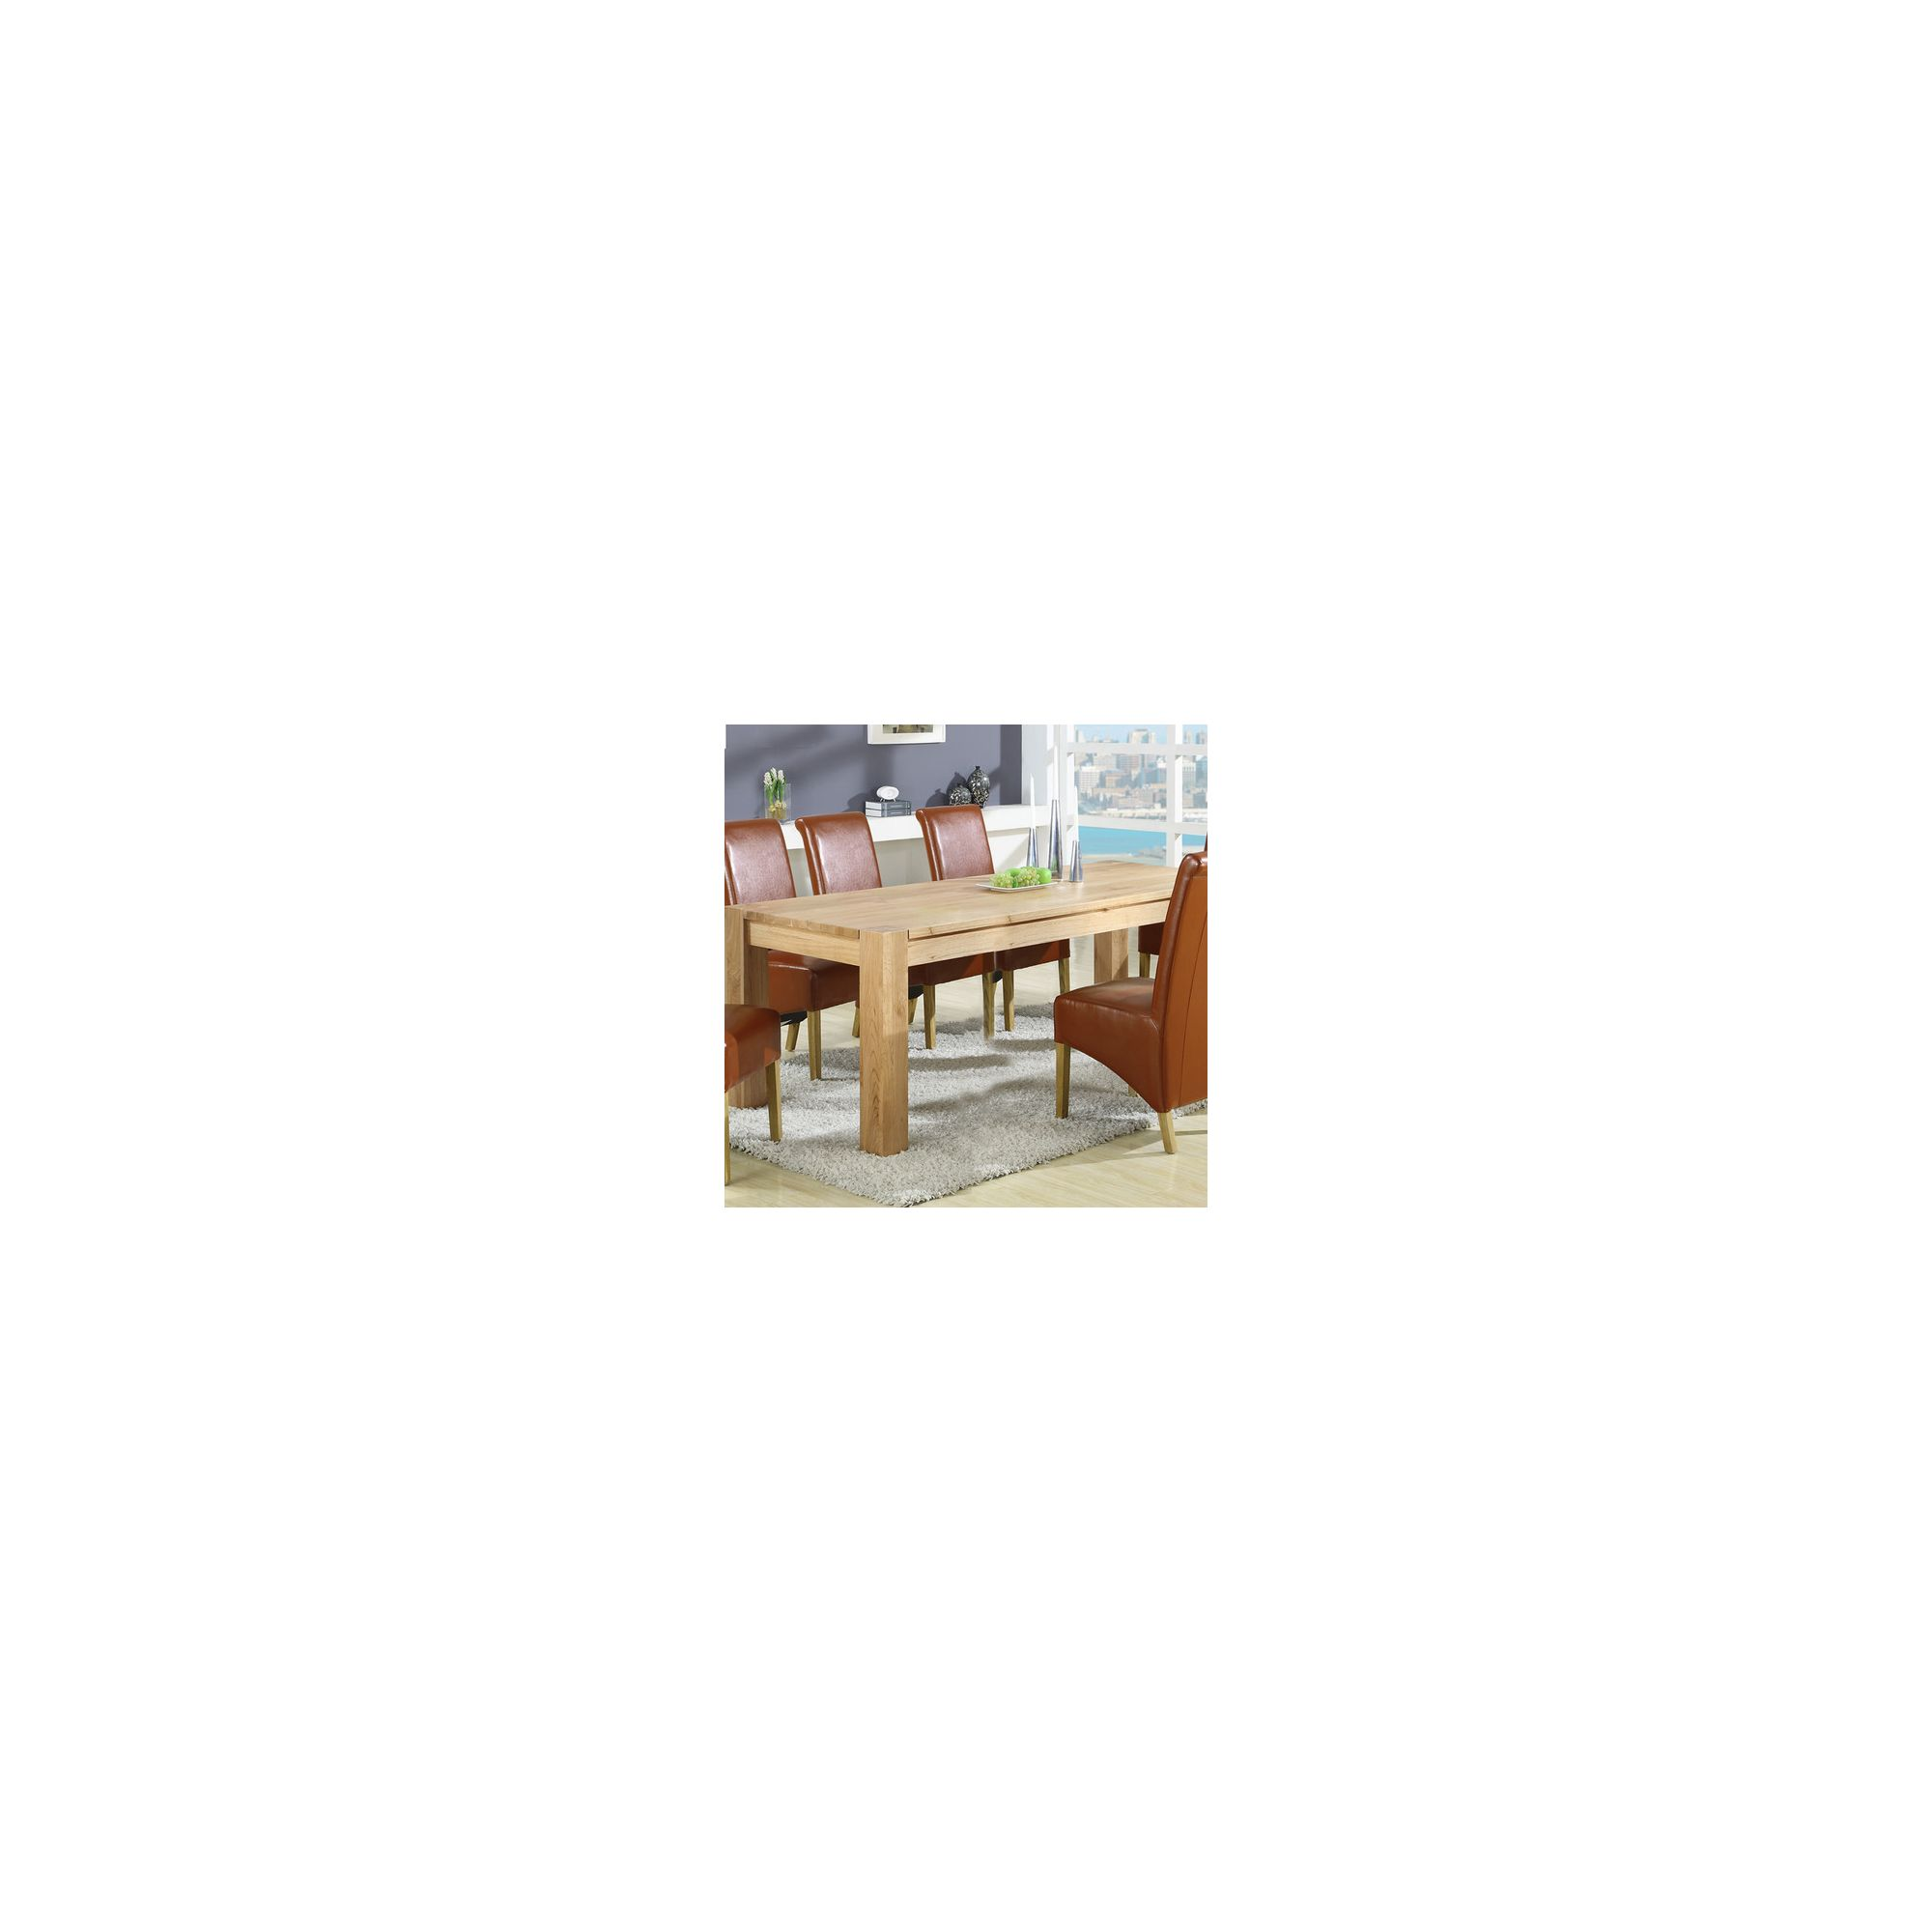 Shankar Enterprises Oslo Dining Table - 180cm W x 90cm D